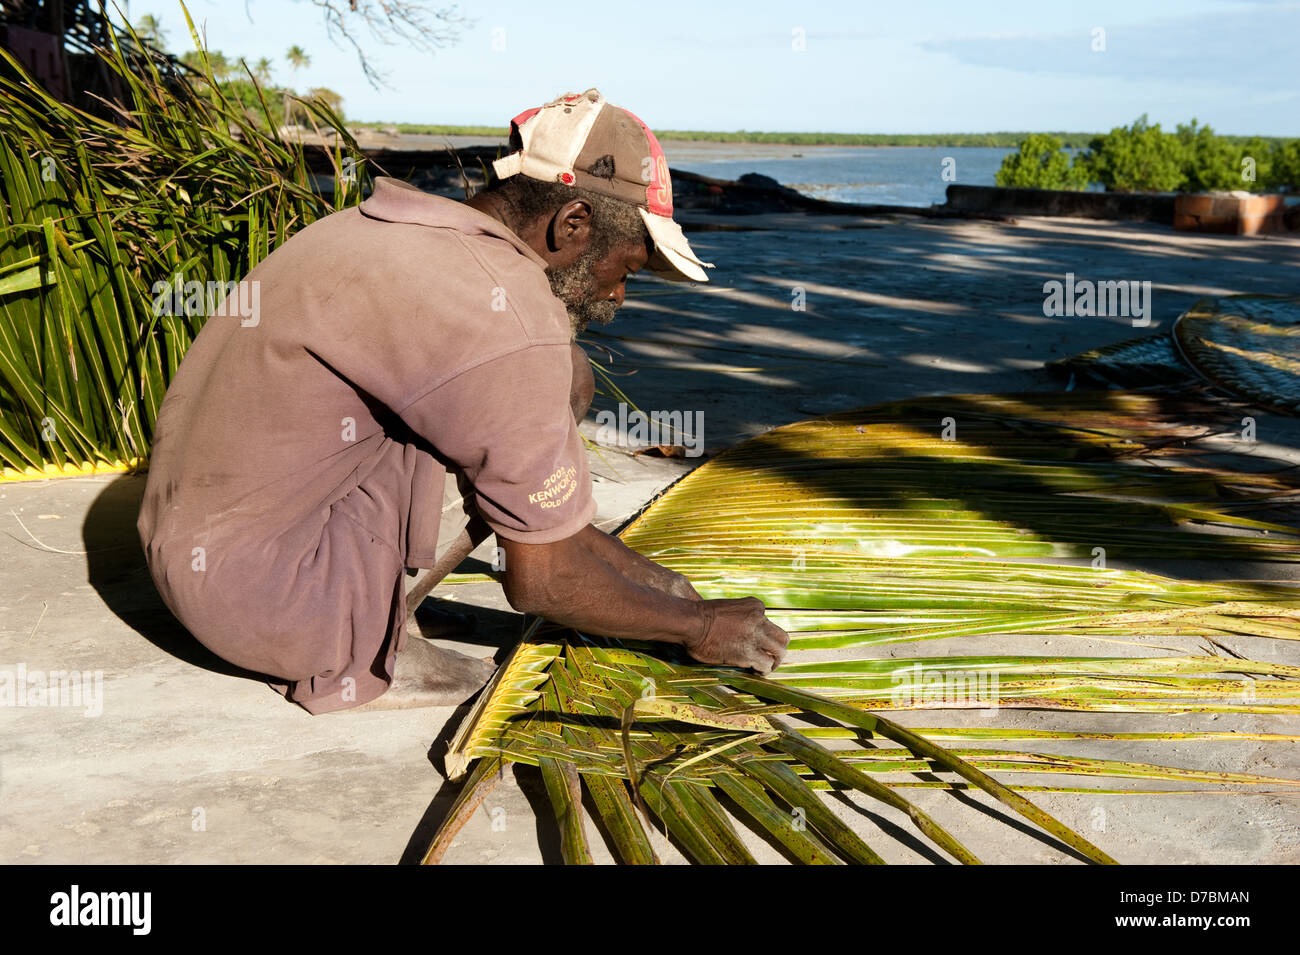 Traditional mat weaving, Ibo island, Mozambique - Stock Image